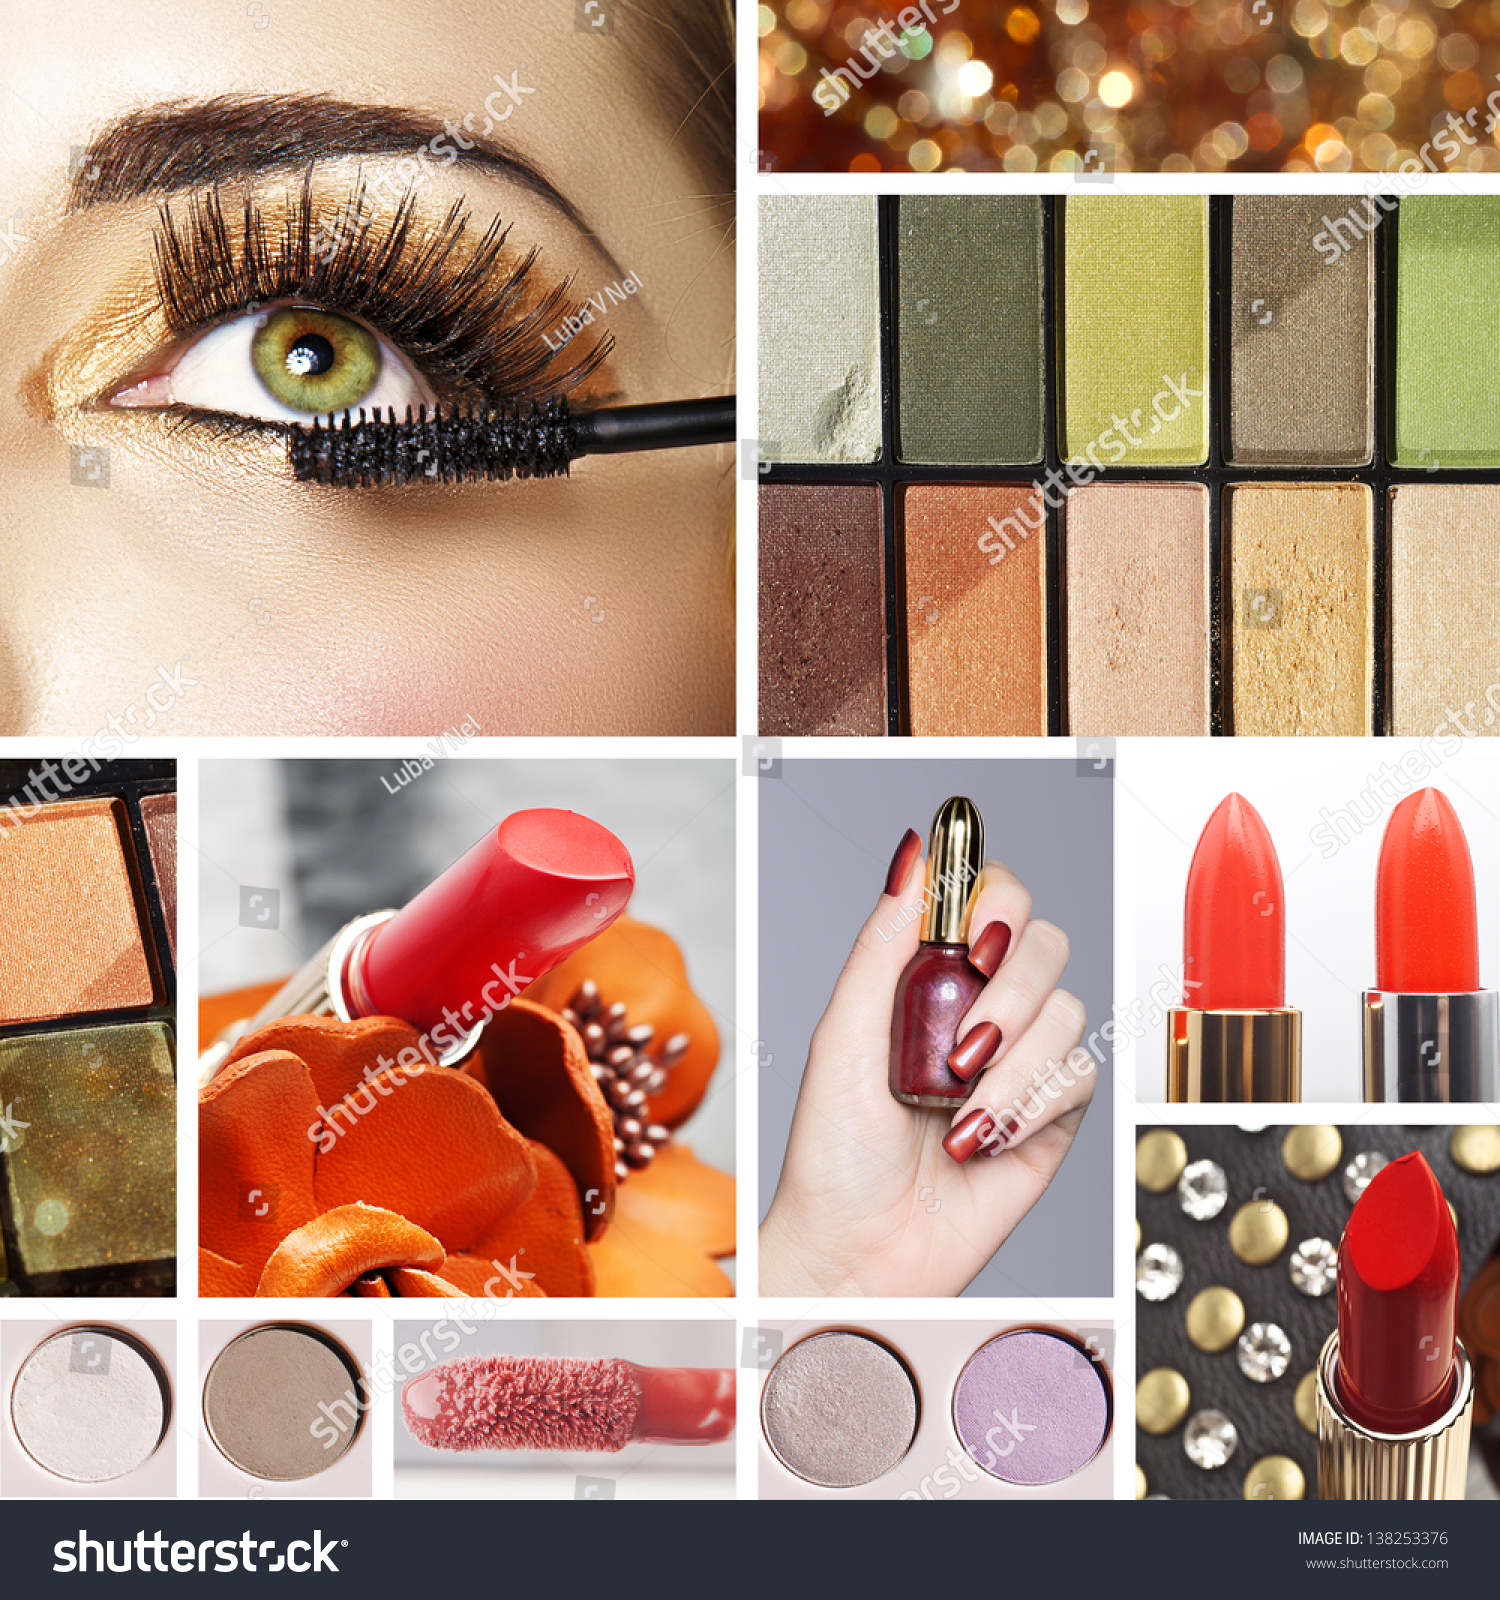 Makeup Mood Board Collage Warm Gold Stock Photo 138253376